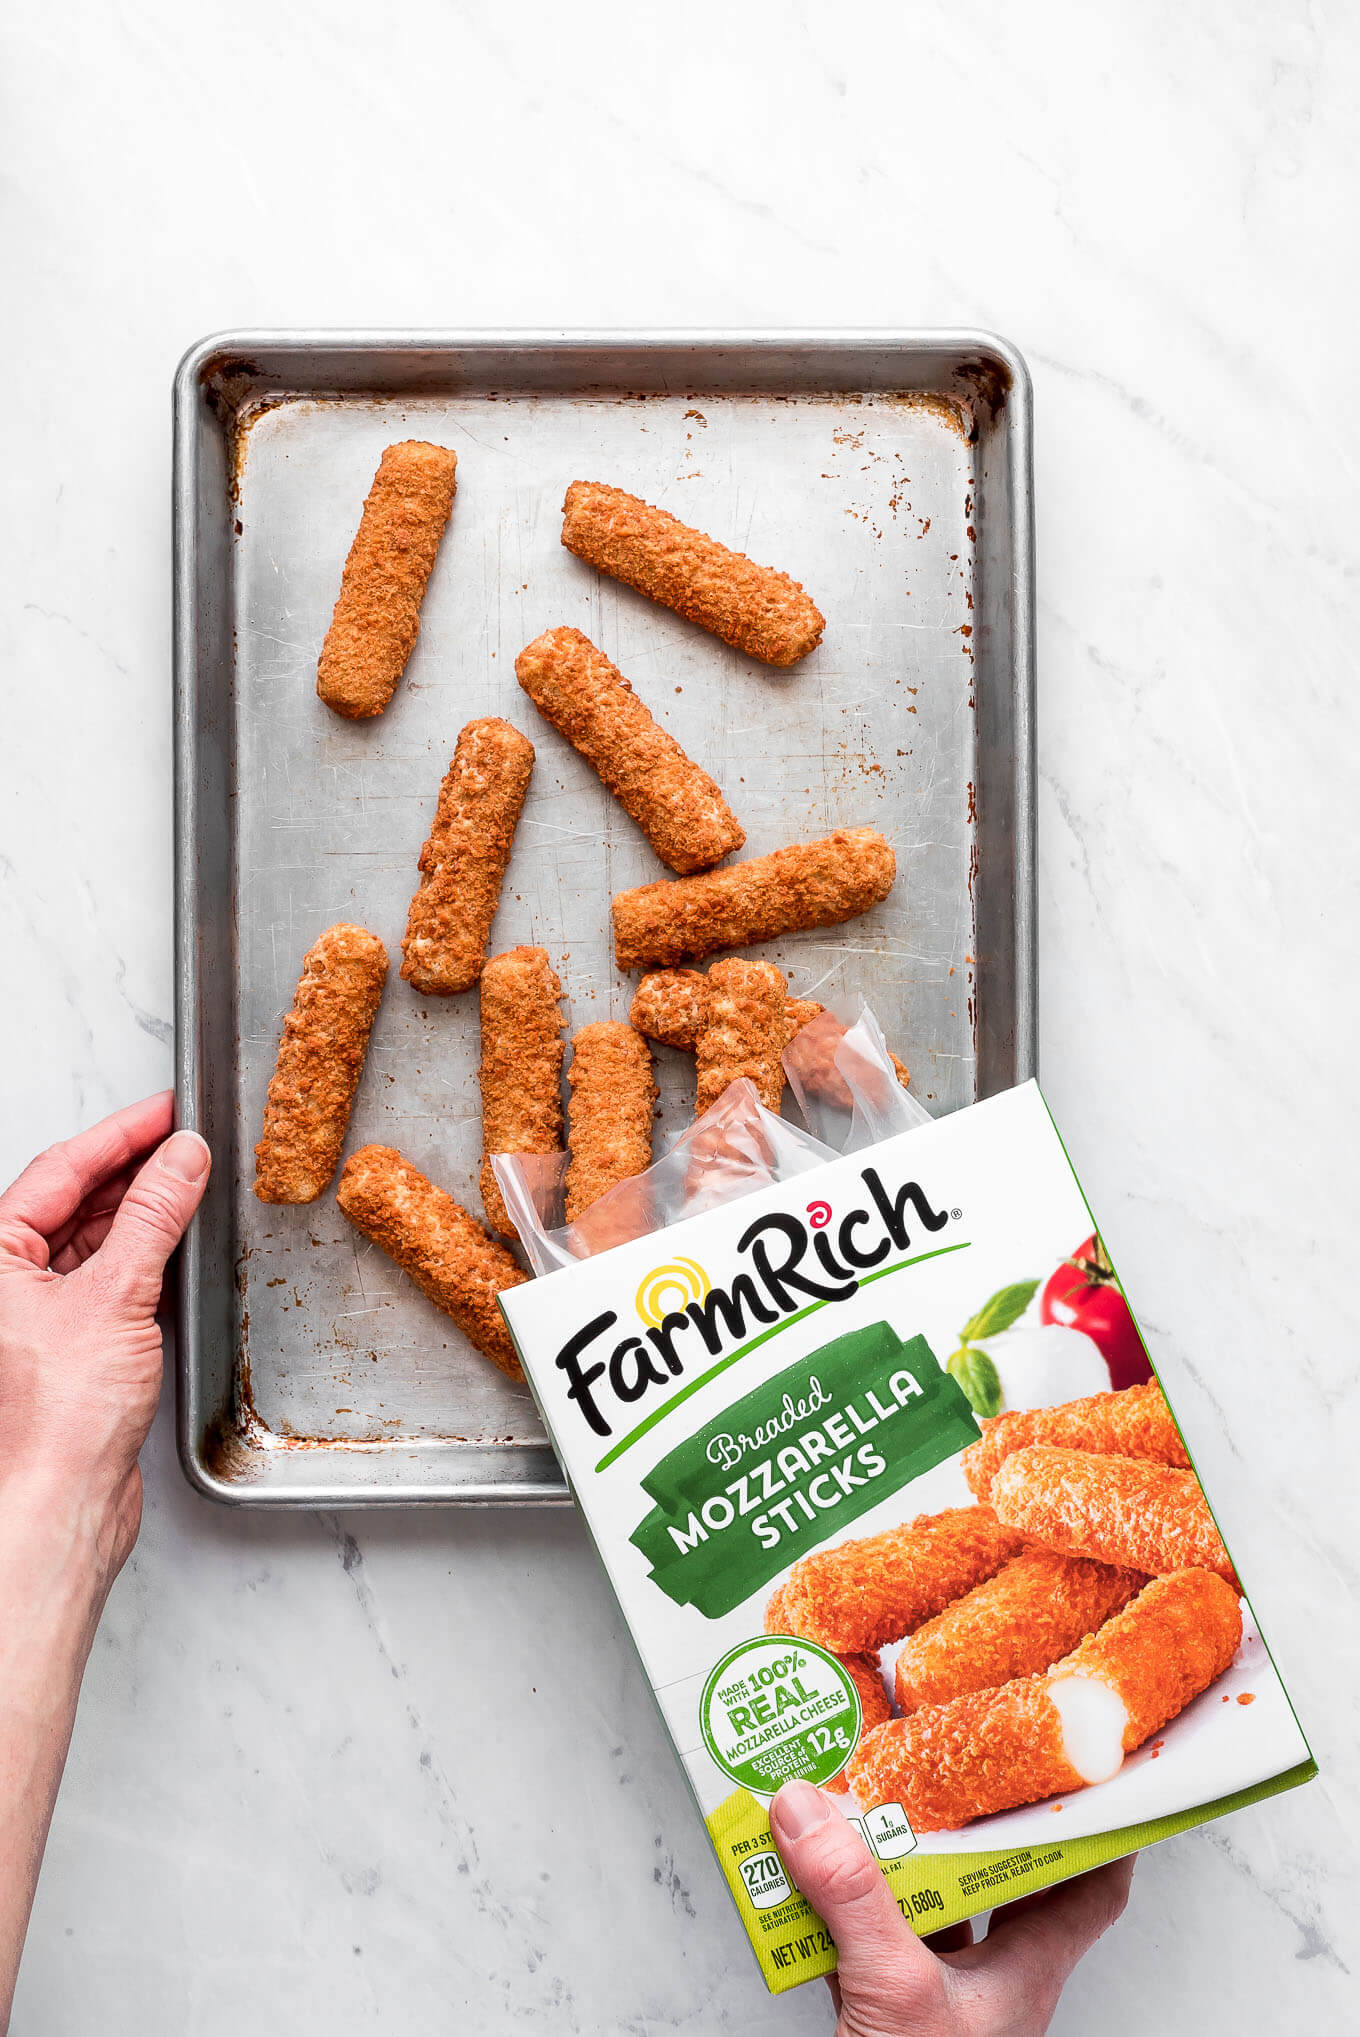 Pouring mozzarella sticks out of a FarmRich box and onto a baking sheet.